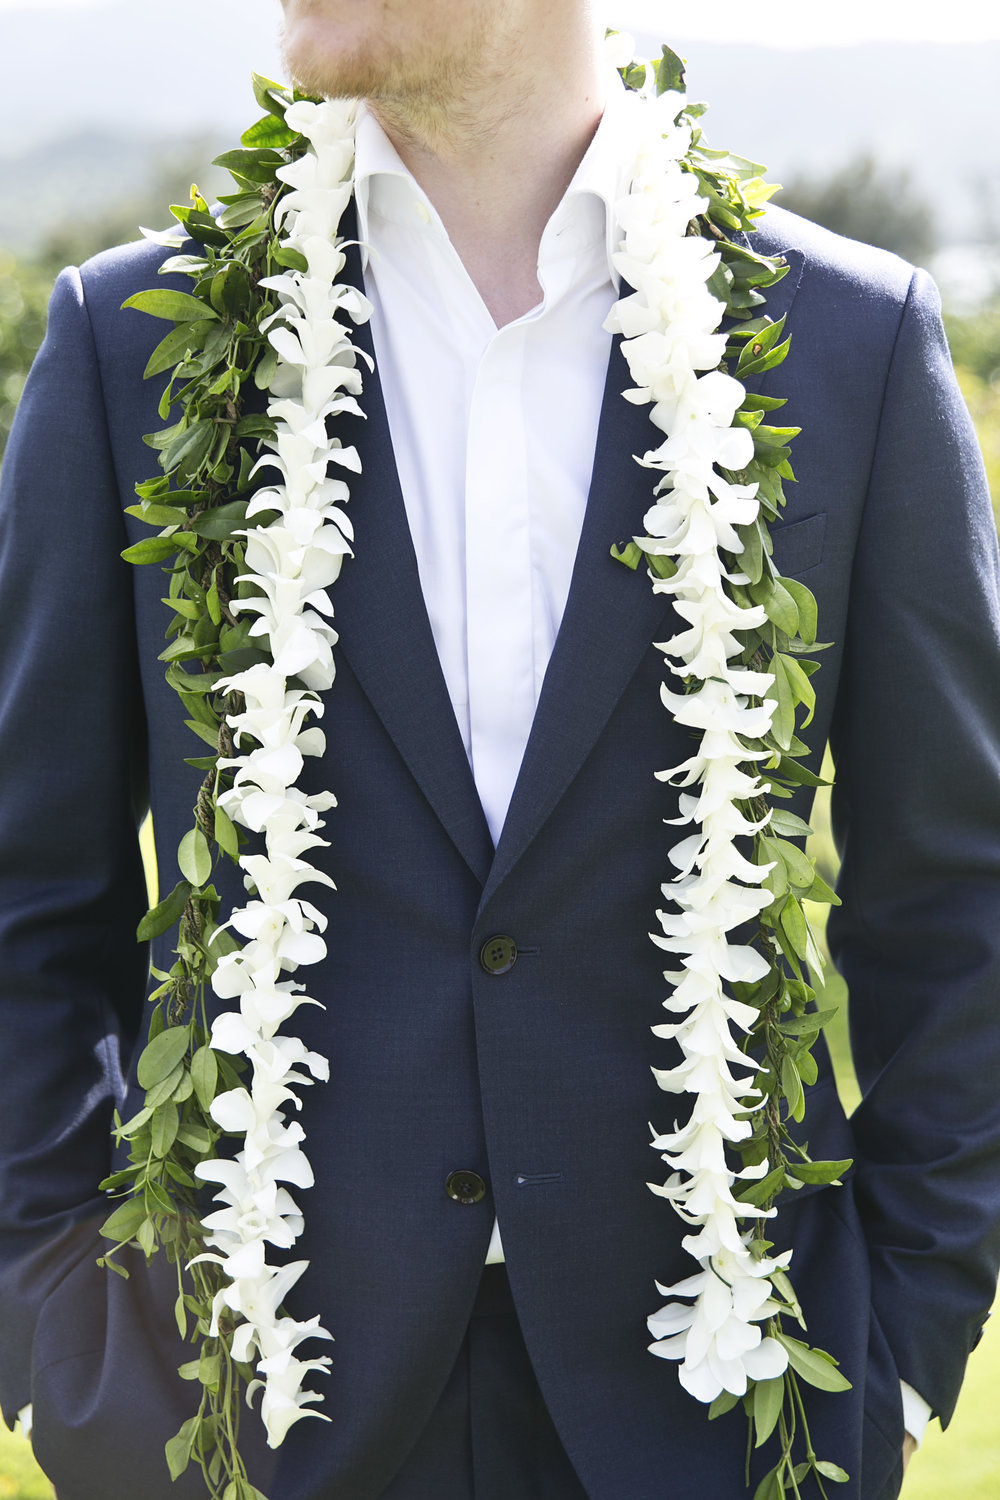 Groom's details at Hawaiian destination wedding